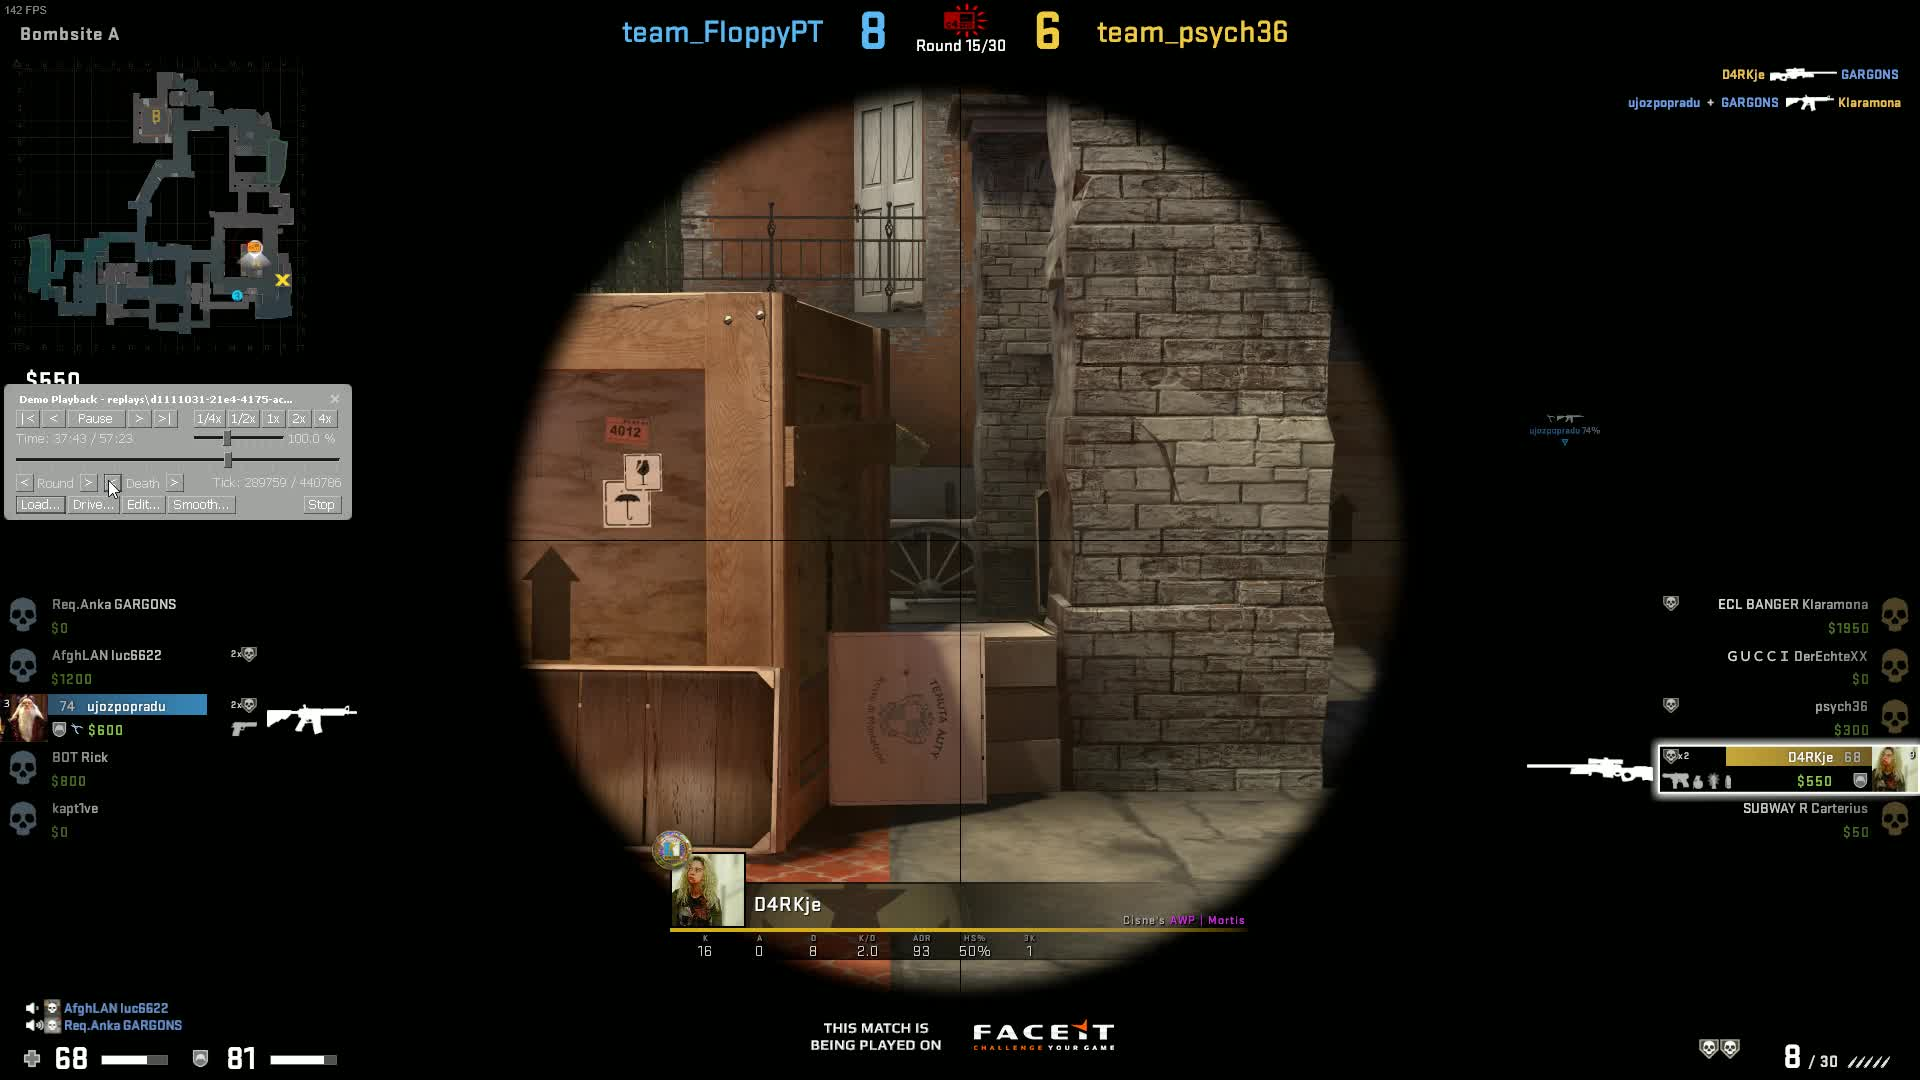 ▷ bhop fraaag GIF by darkstunter - Find & Download & Share GIFs on